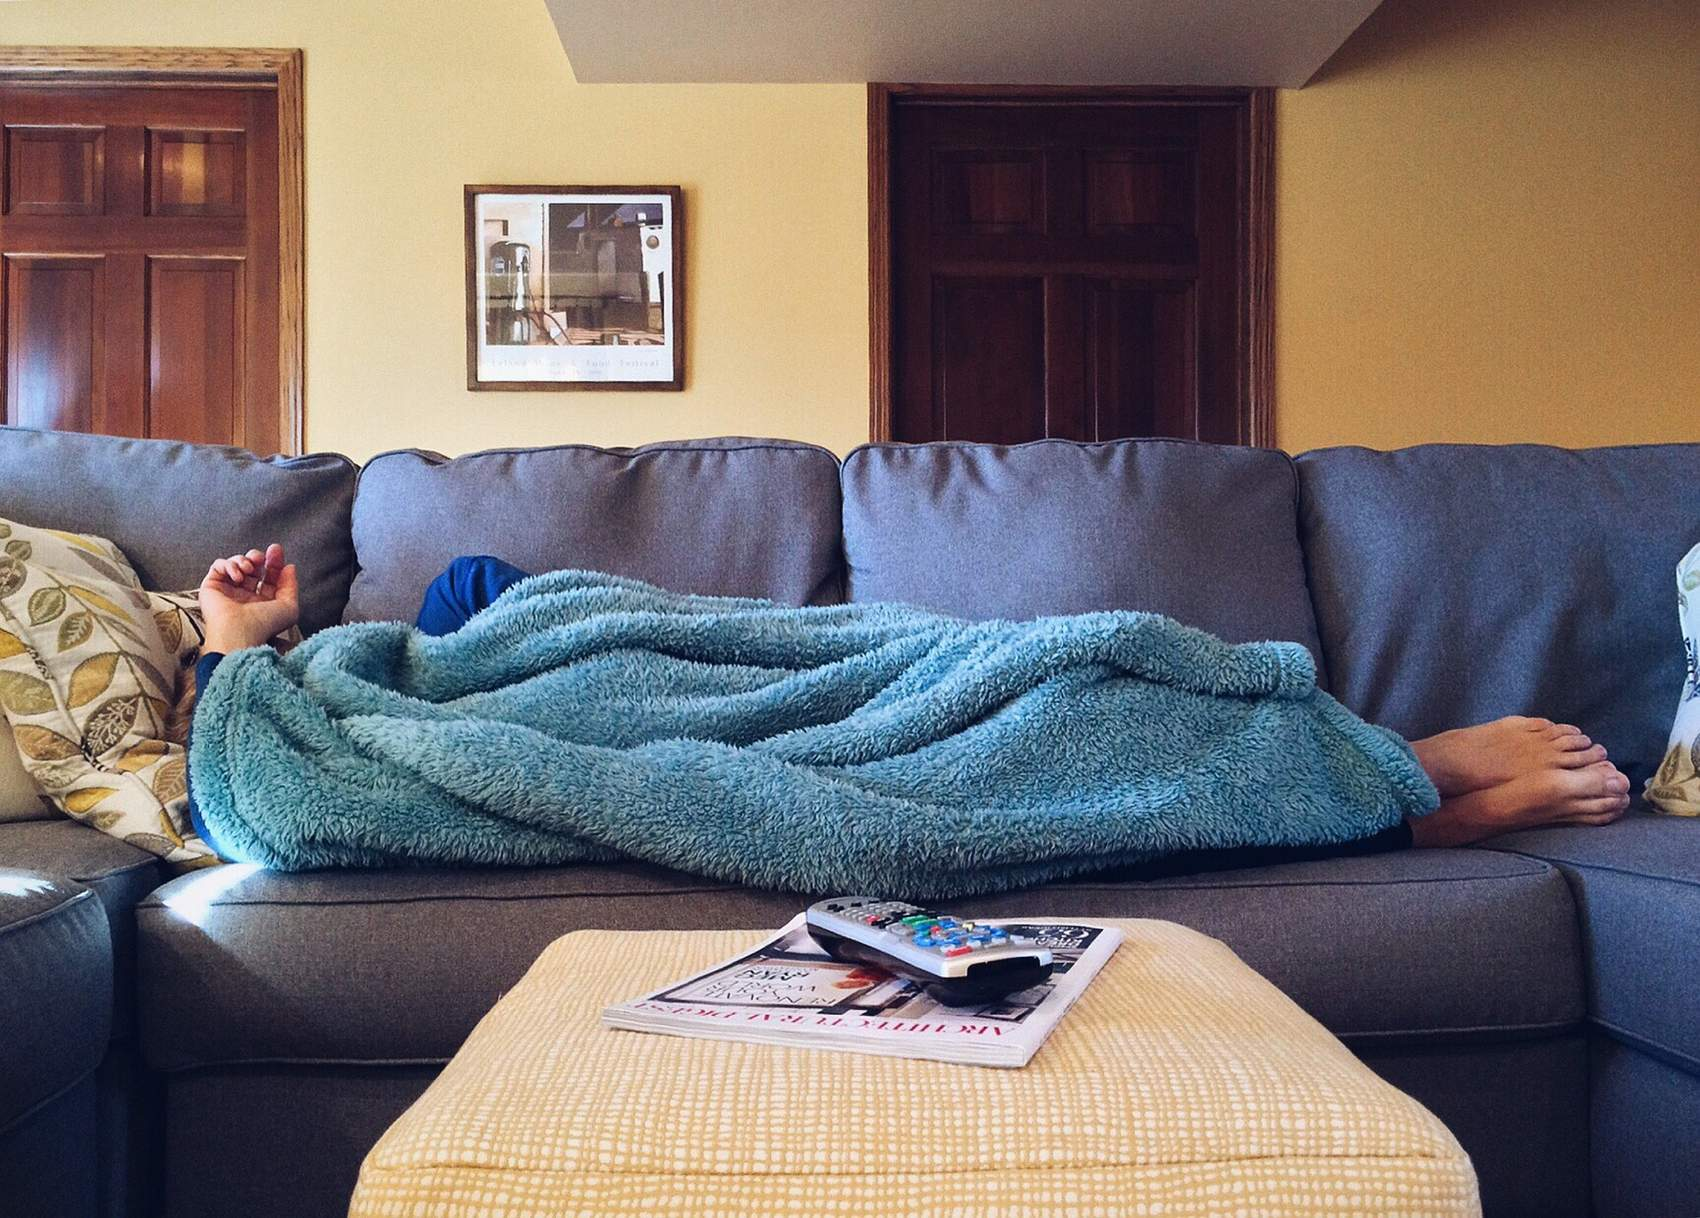 A woman is sleeping on a gray coush with a blue blanket covering her body and her head, only her feet and one hand are showing.